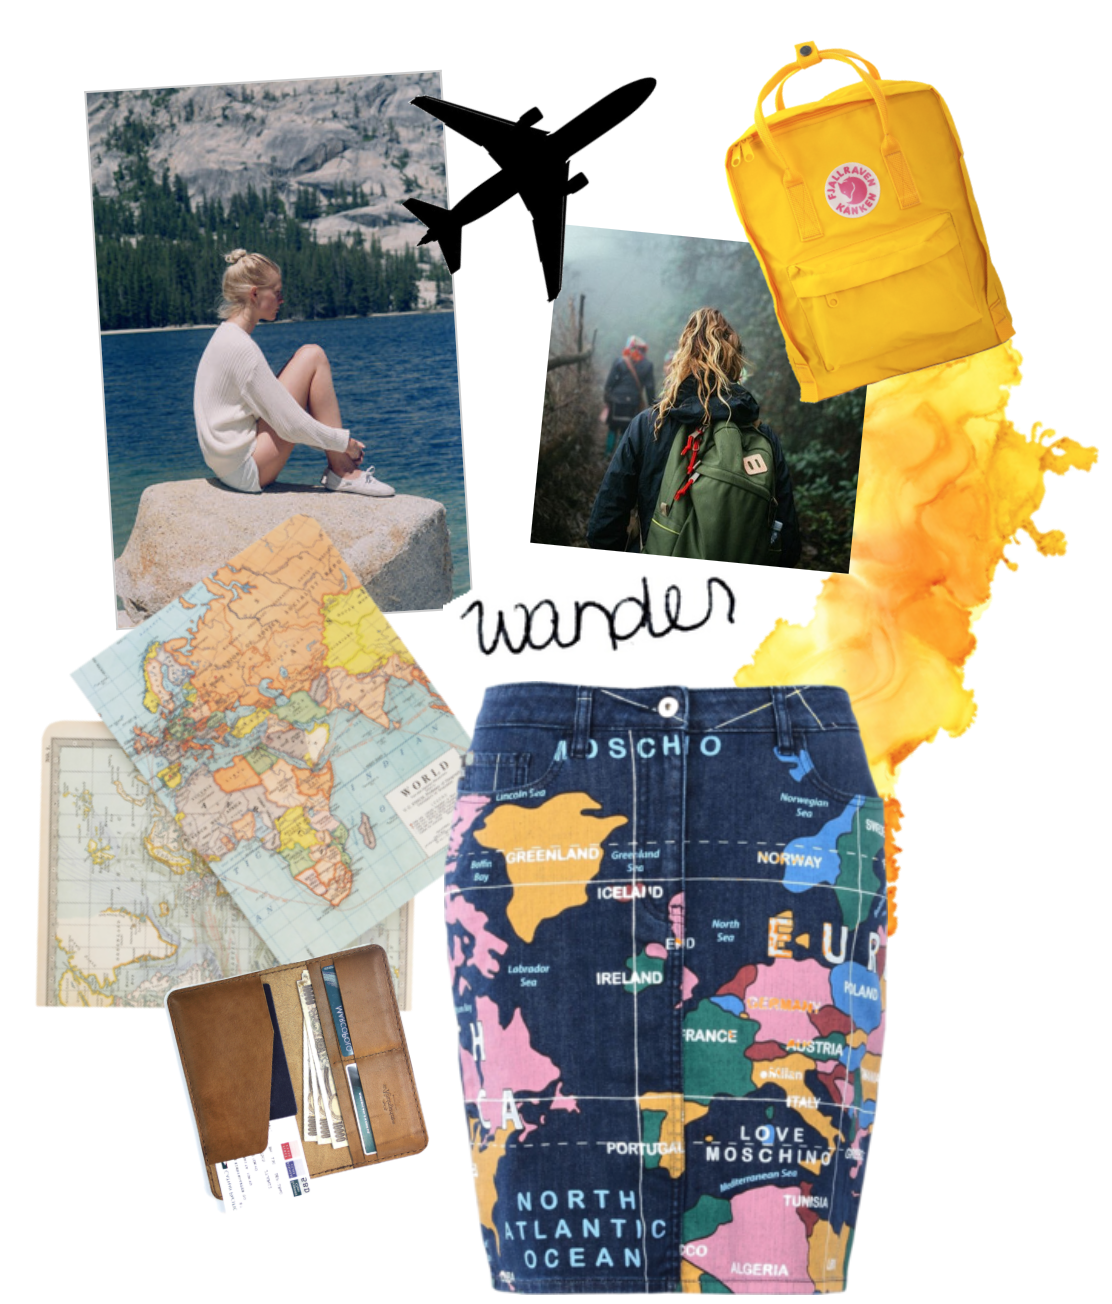 wanderlust and Moschino skirts, mapping your way through fashion